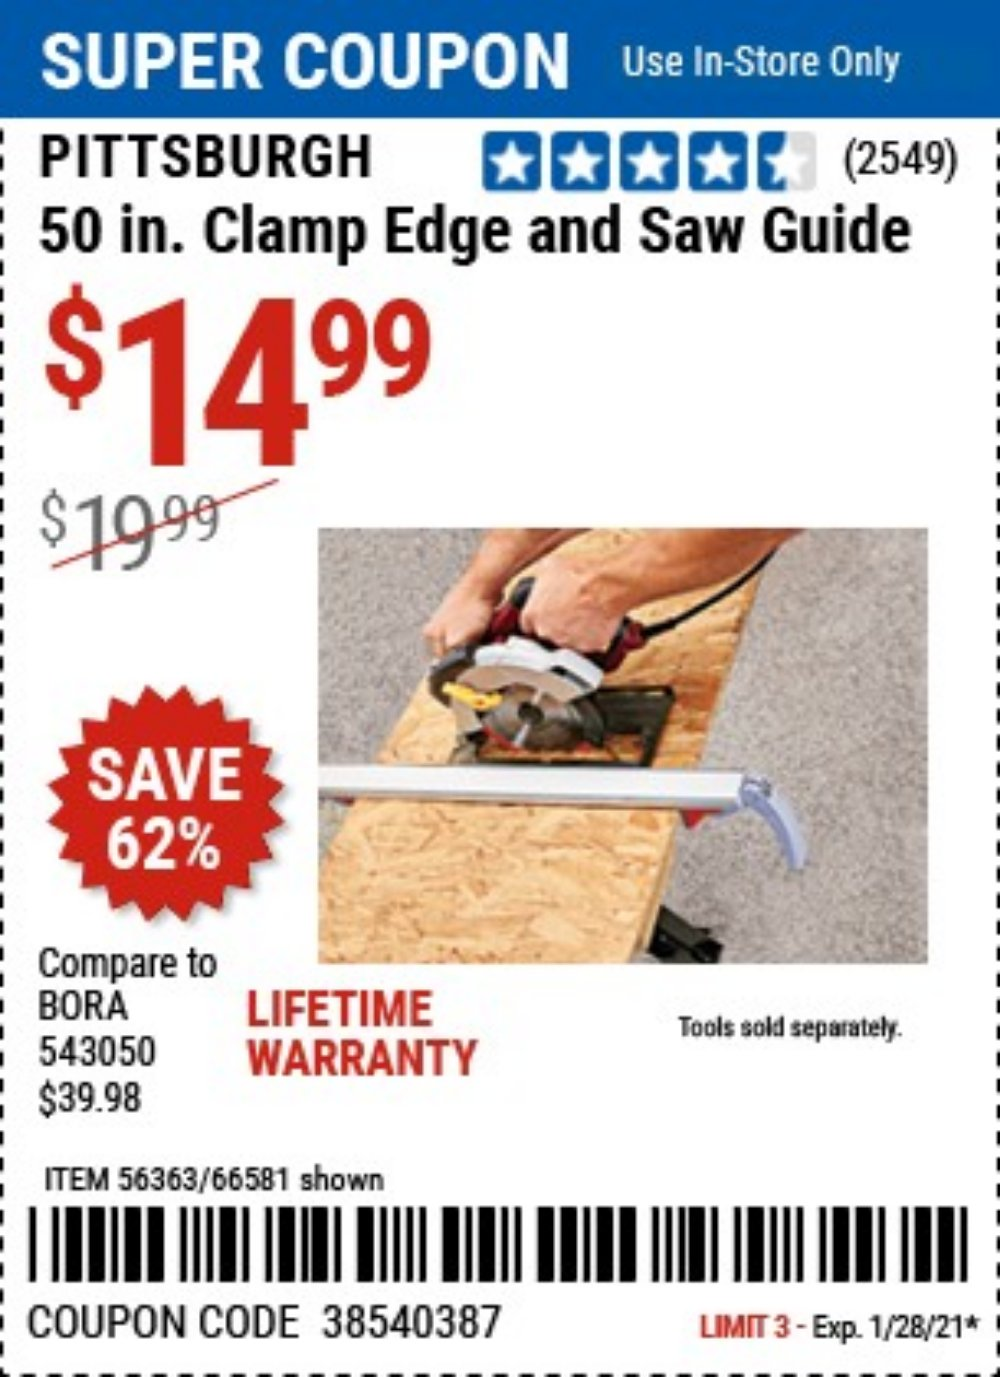 Harbor Freight Coupon, HF Coupons - 50 Clamp Edge And Saw Guide